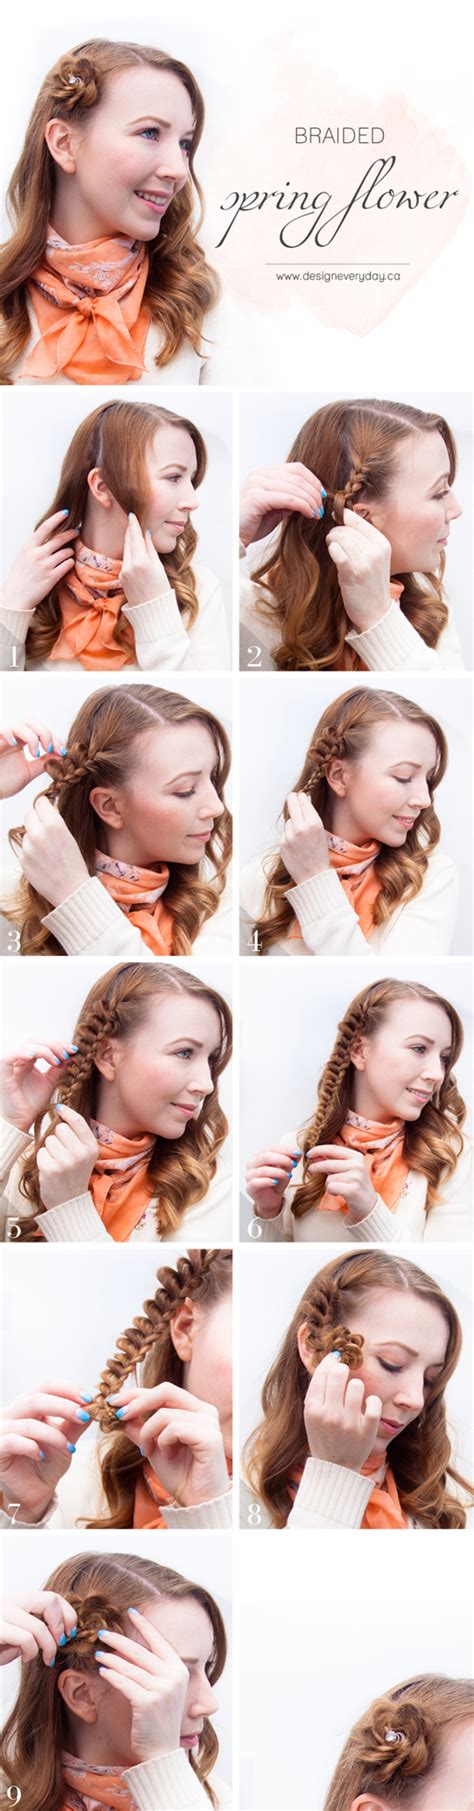 step bu step coil hairstyles spring flower hairstyle tutorial hair romance